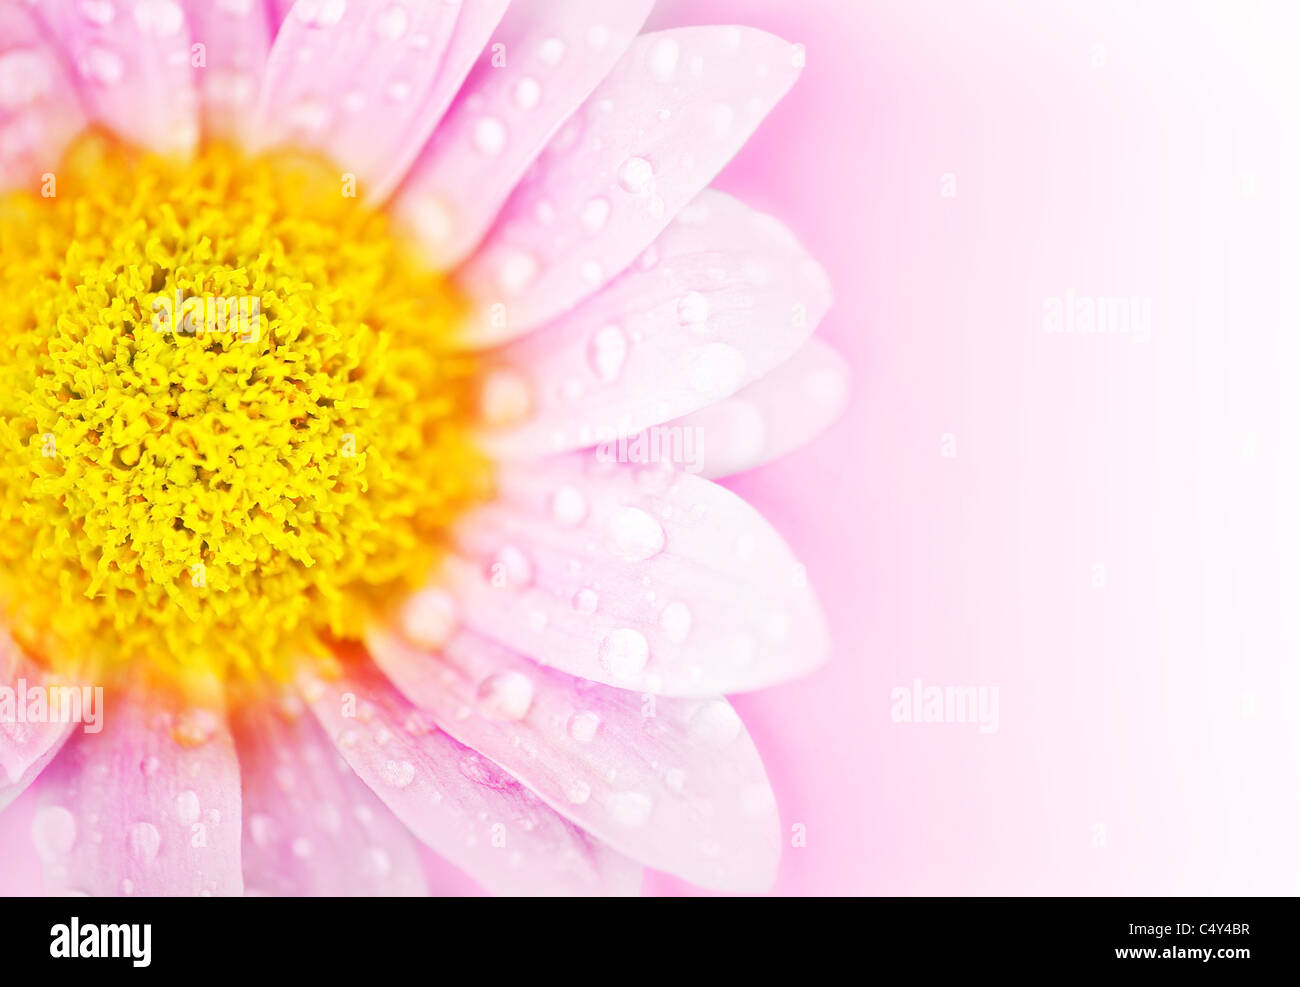 Pink floral abstract background with wet daisy flower border stock pink floral abstract background with wet daisy flower border izmirmasajfo